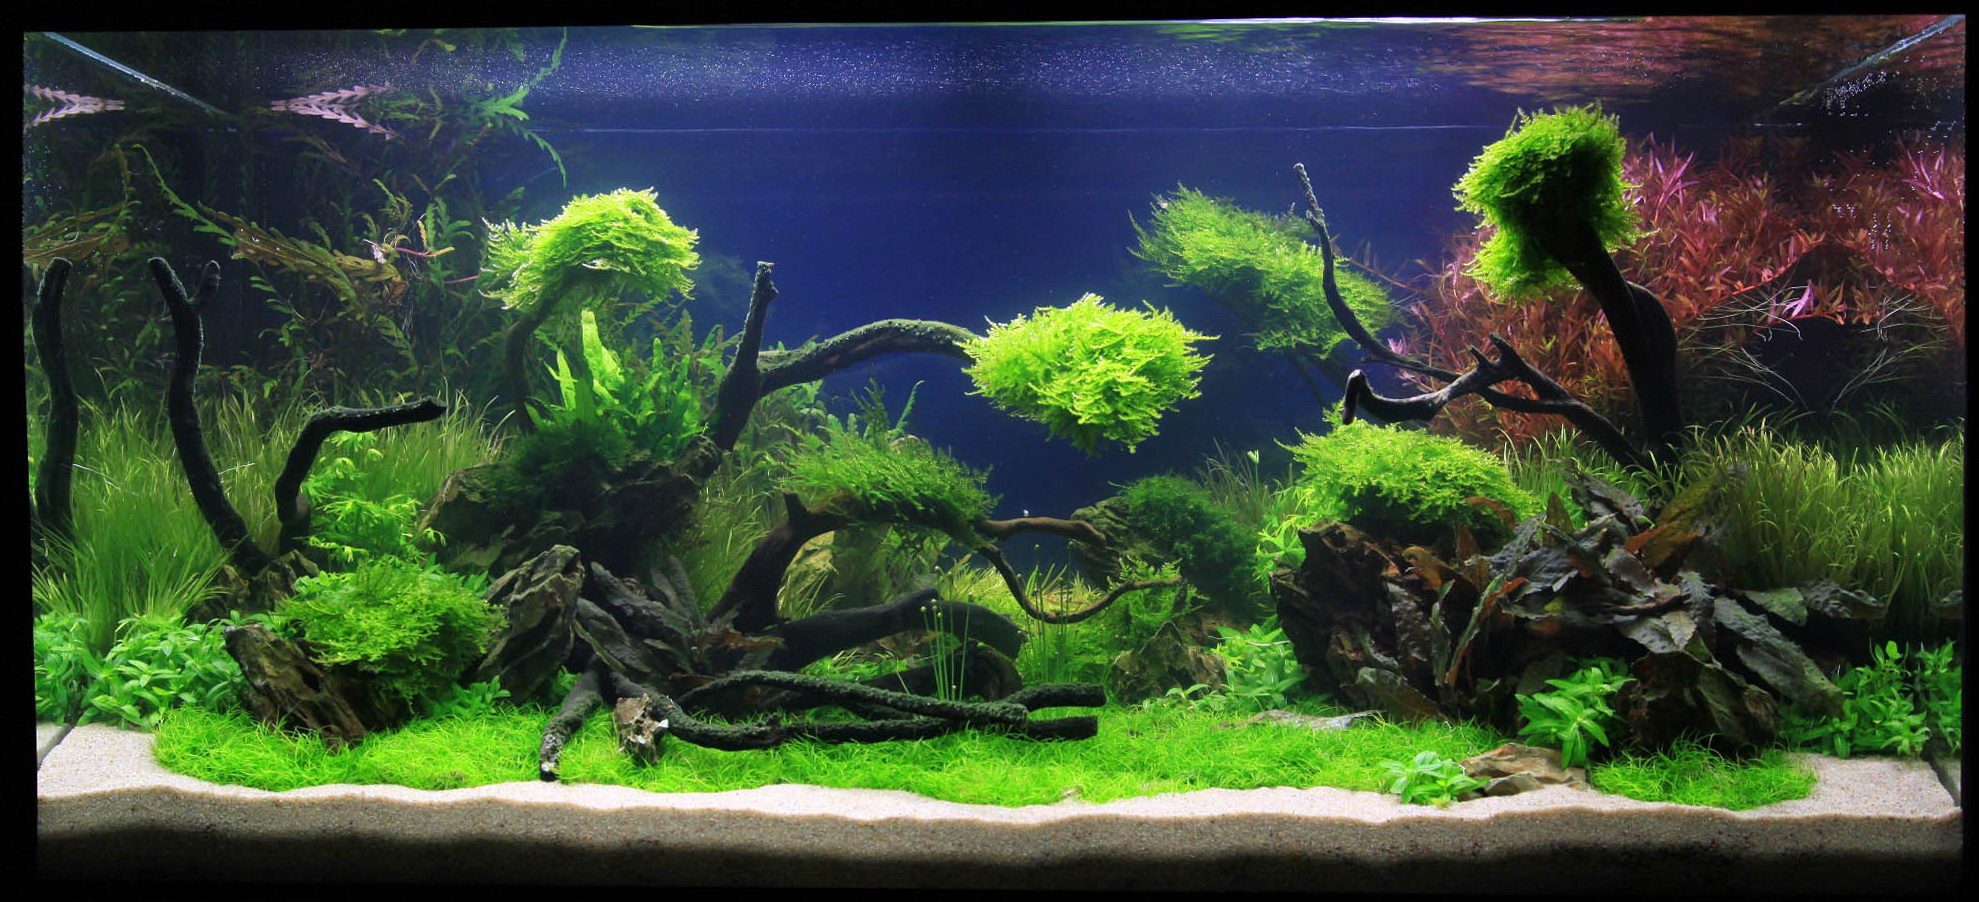 Adrie baumann and aquascaping aqua rebell for Aquarium design